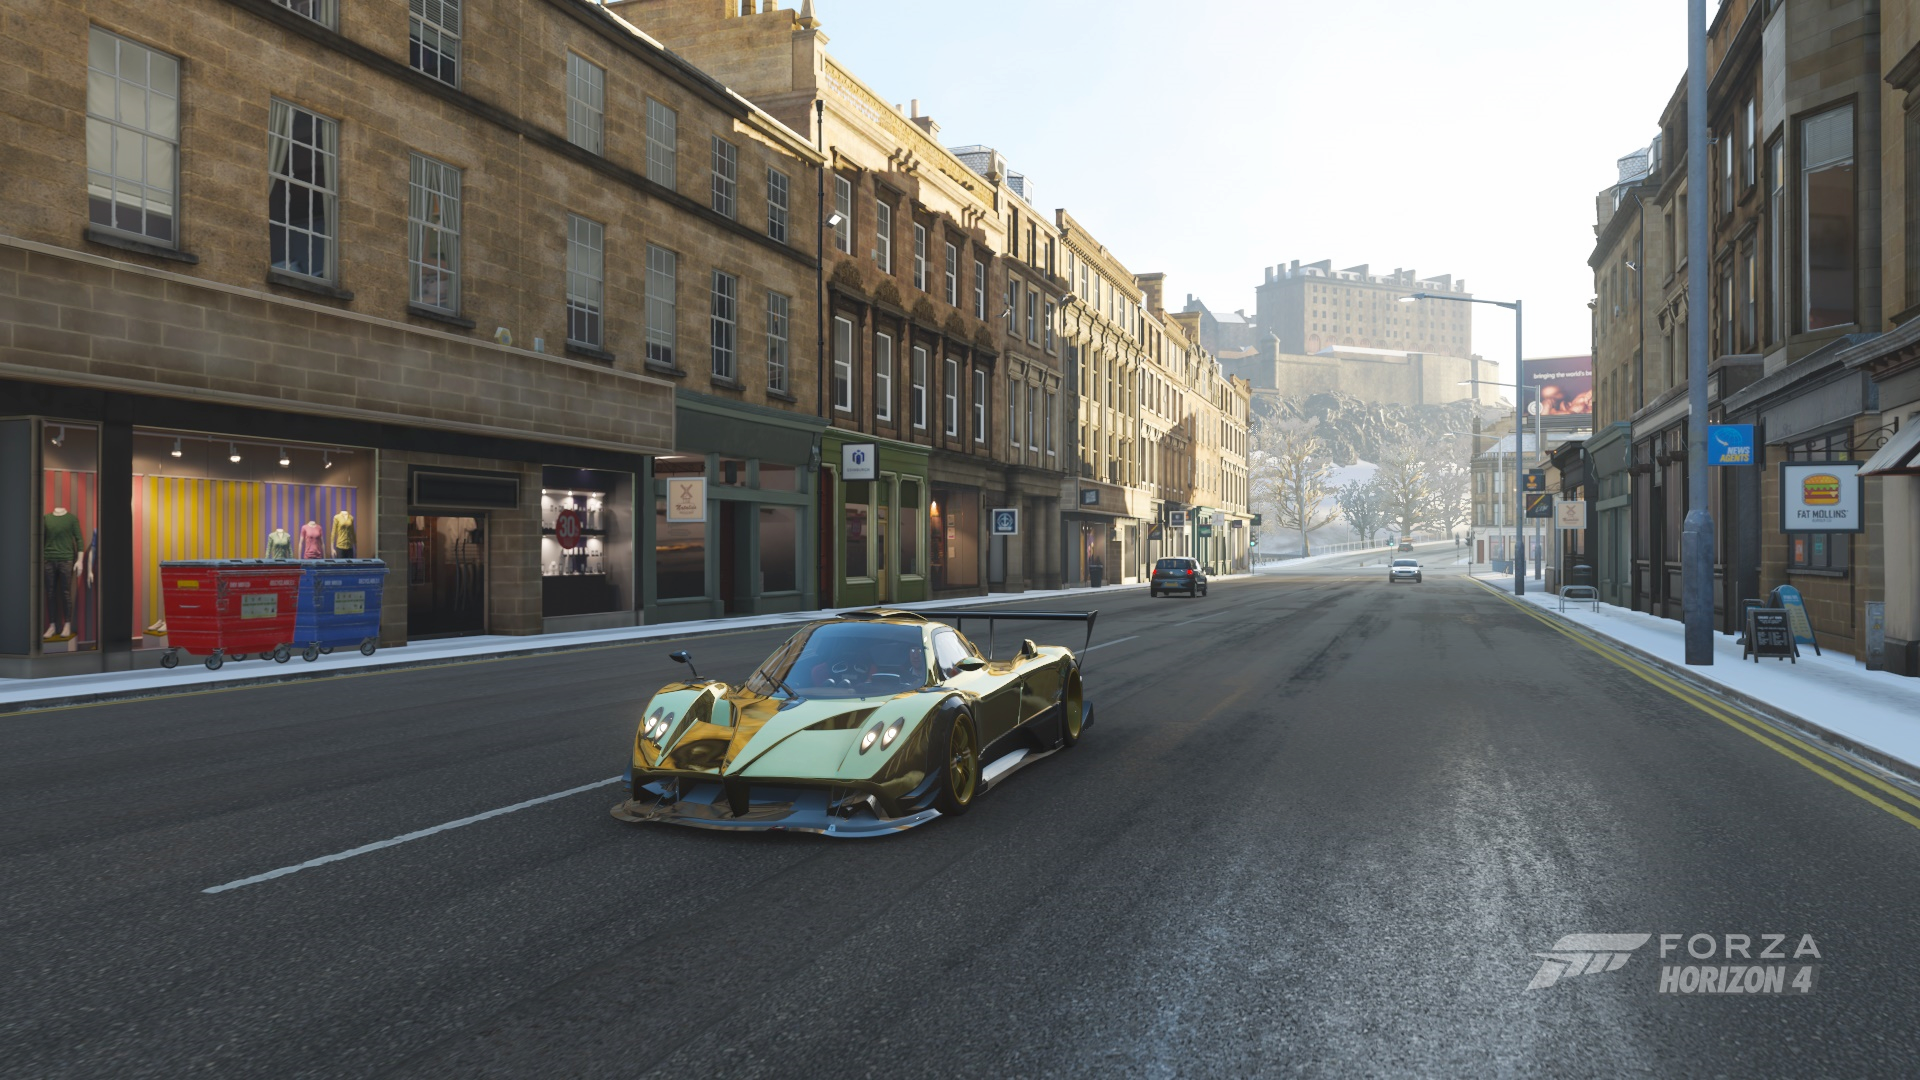 Forza Horizon 4 Review: A fresh map with a new approach to the same